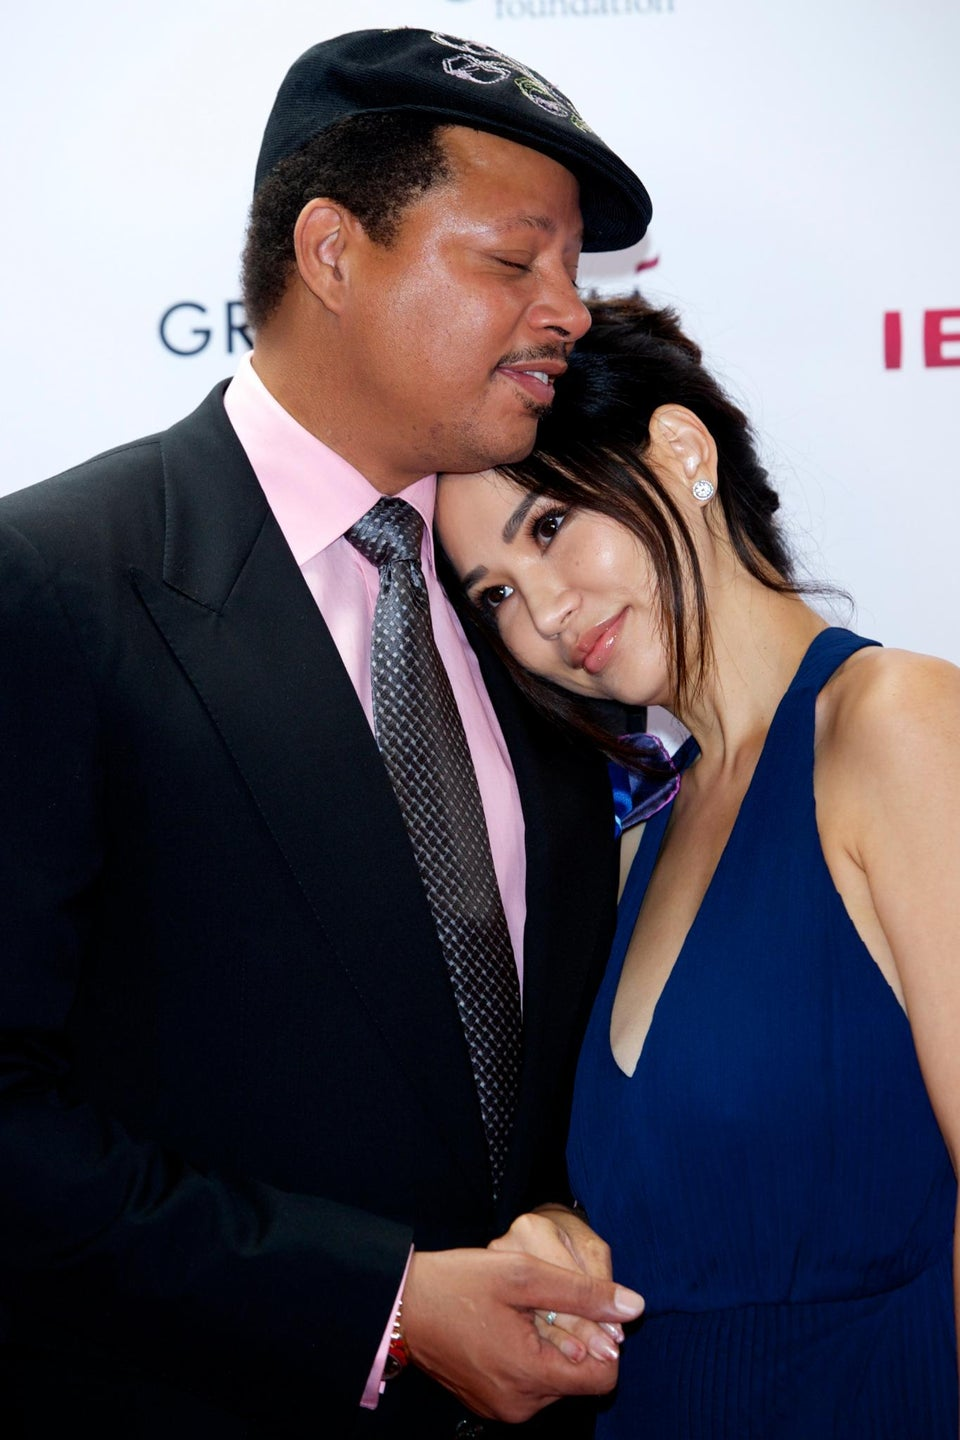 Terrence Howard Announces Wife Miranda is Expecting